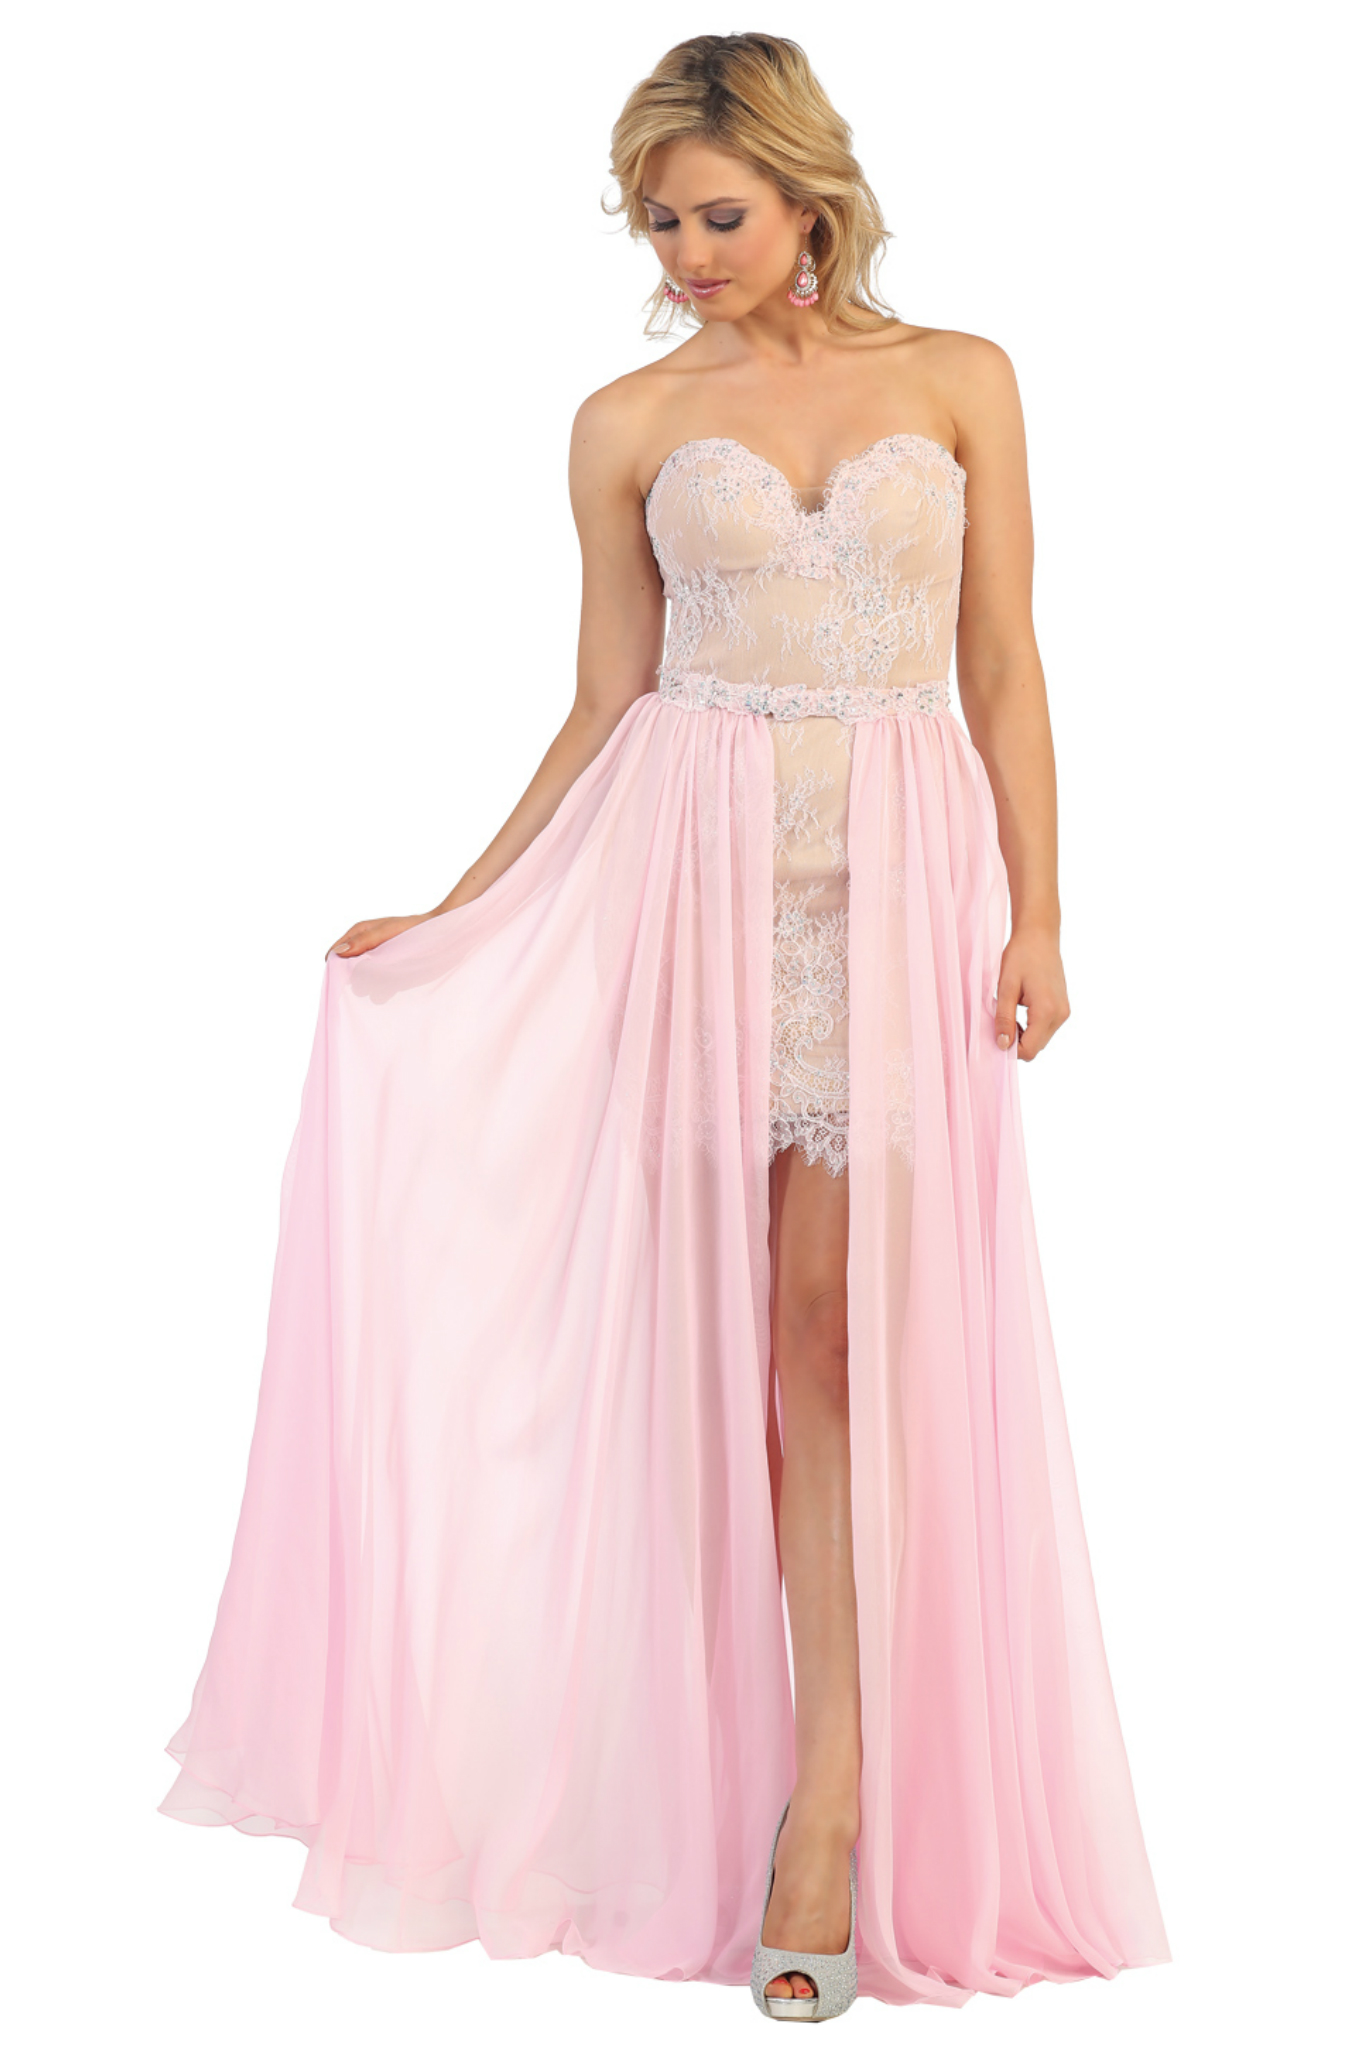 Bridal Trends: Wedding Dresses with Detachable Skirts ... |Dresses With Detachable Skirts